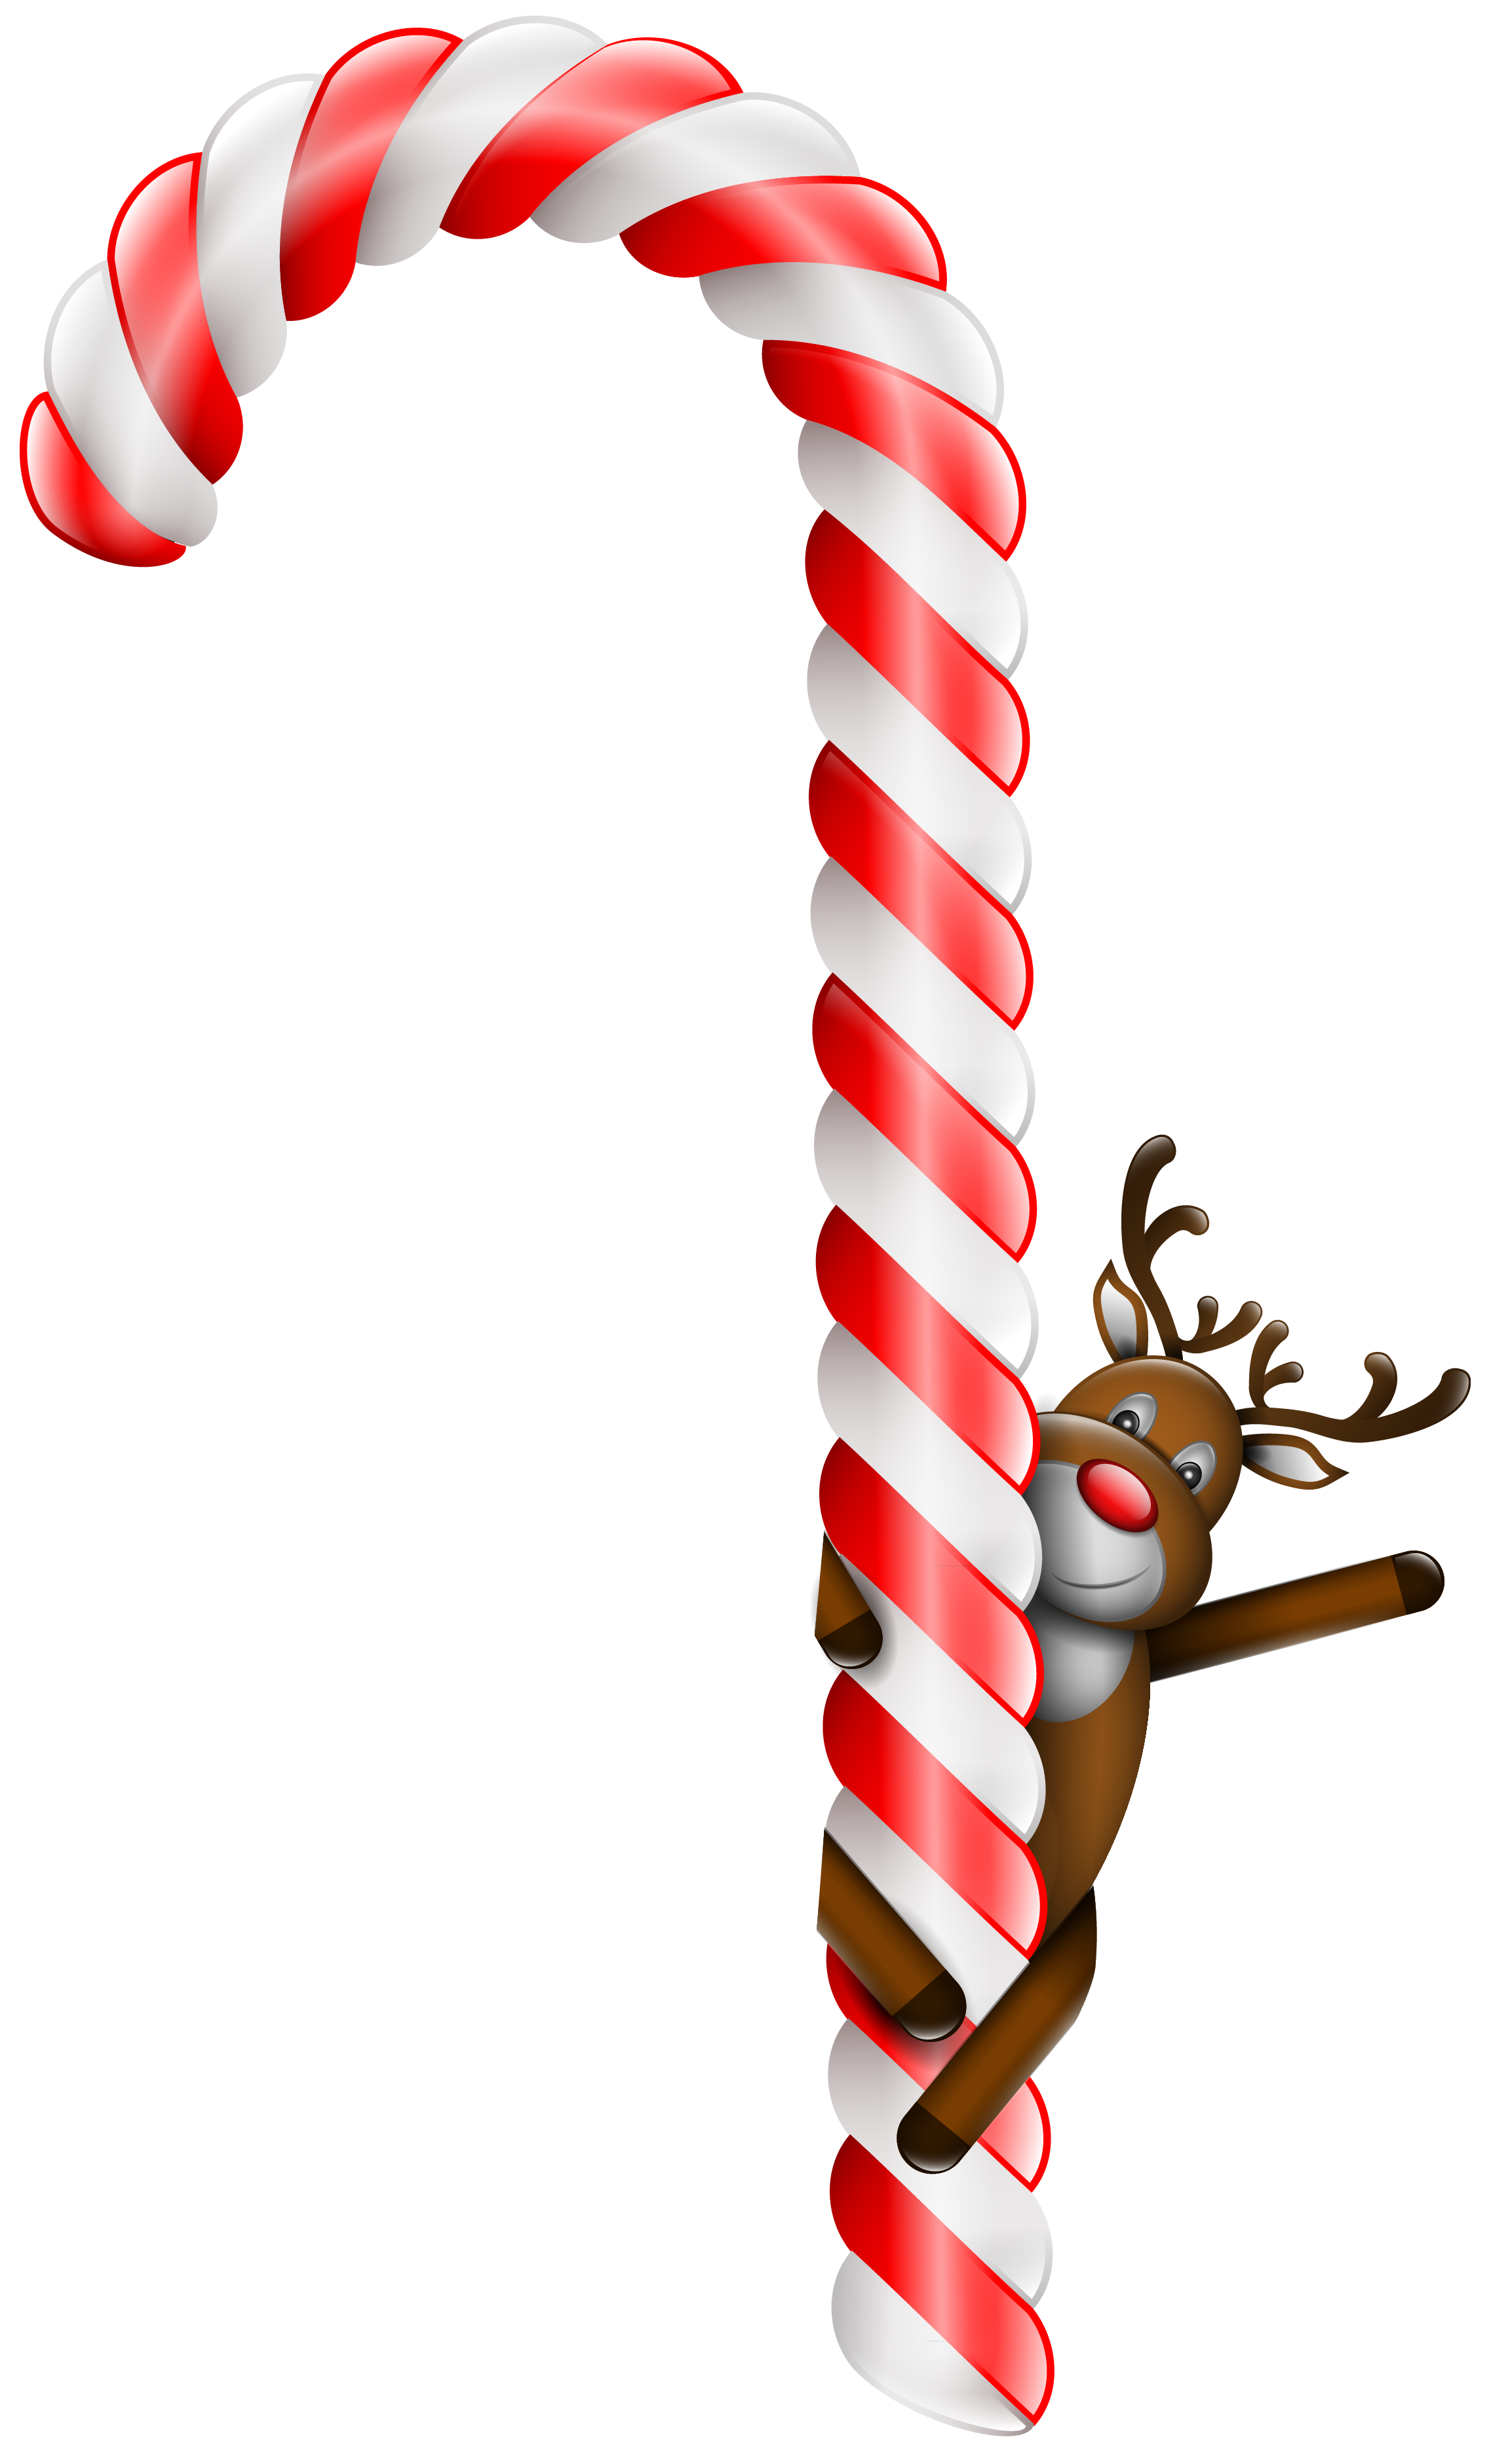 Candies clipart transparent background png free clipart transparent library Transparent Large Christmas Candy Cane with Deer PNG Clipart clipart transparent library